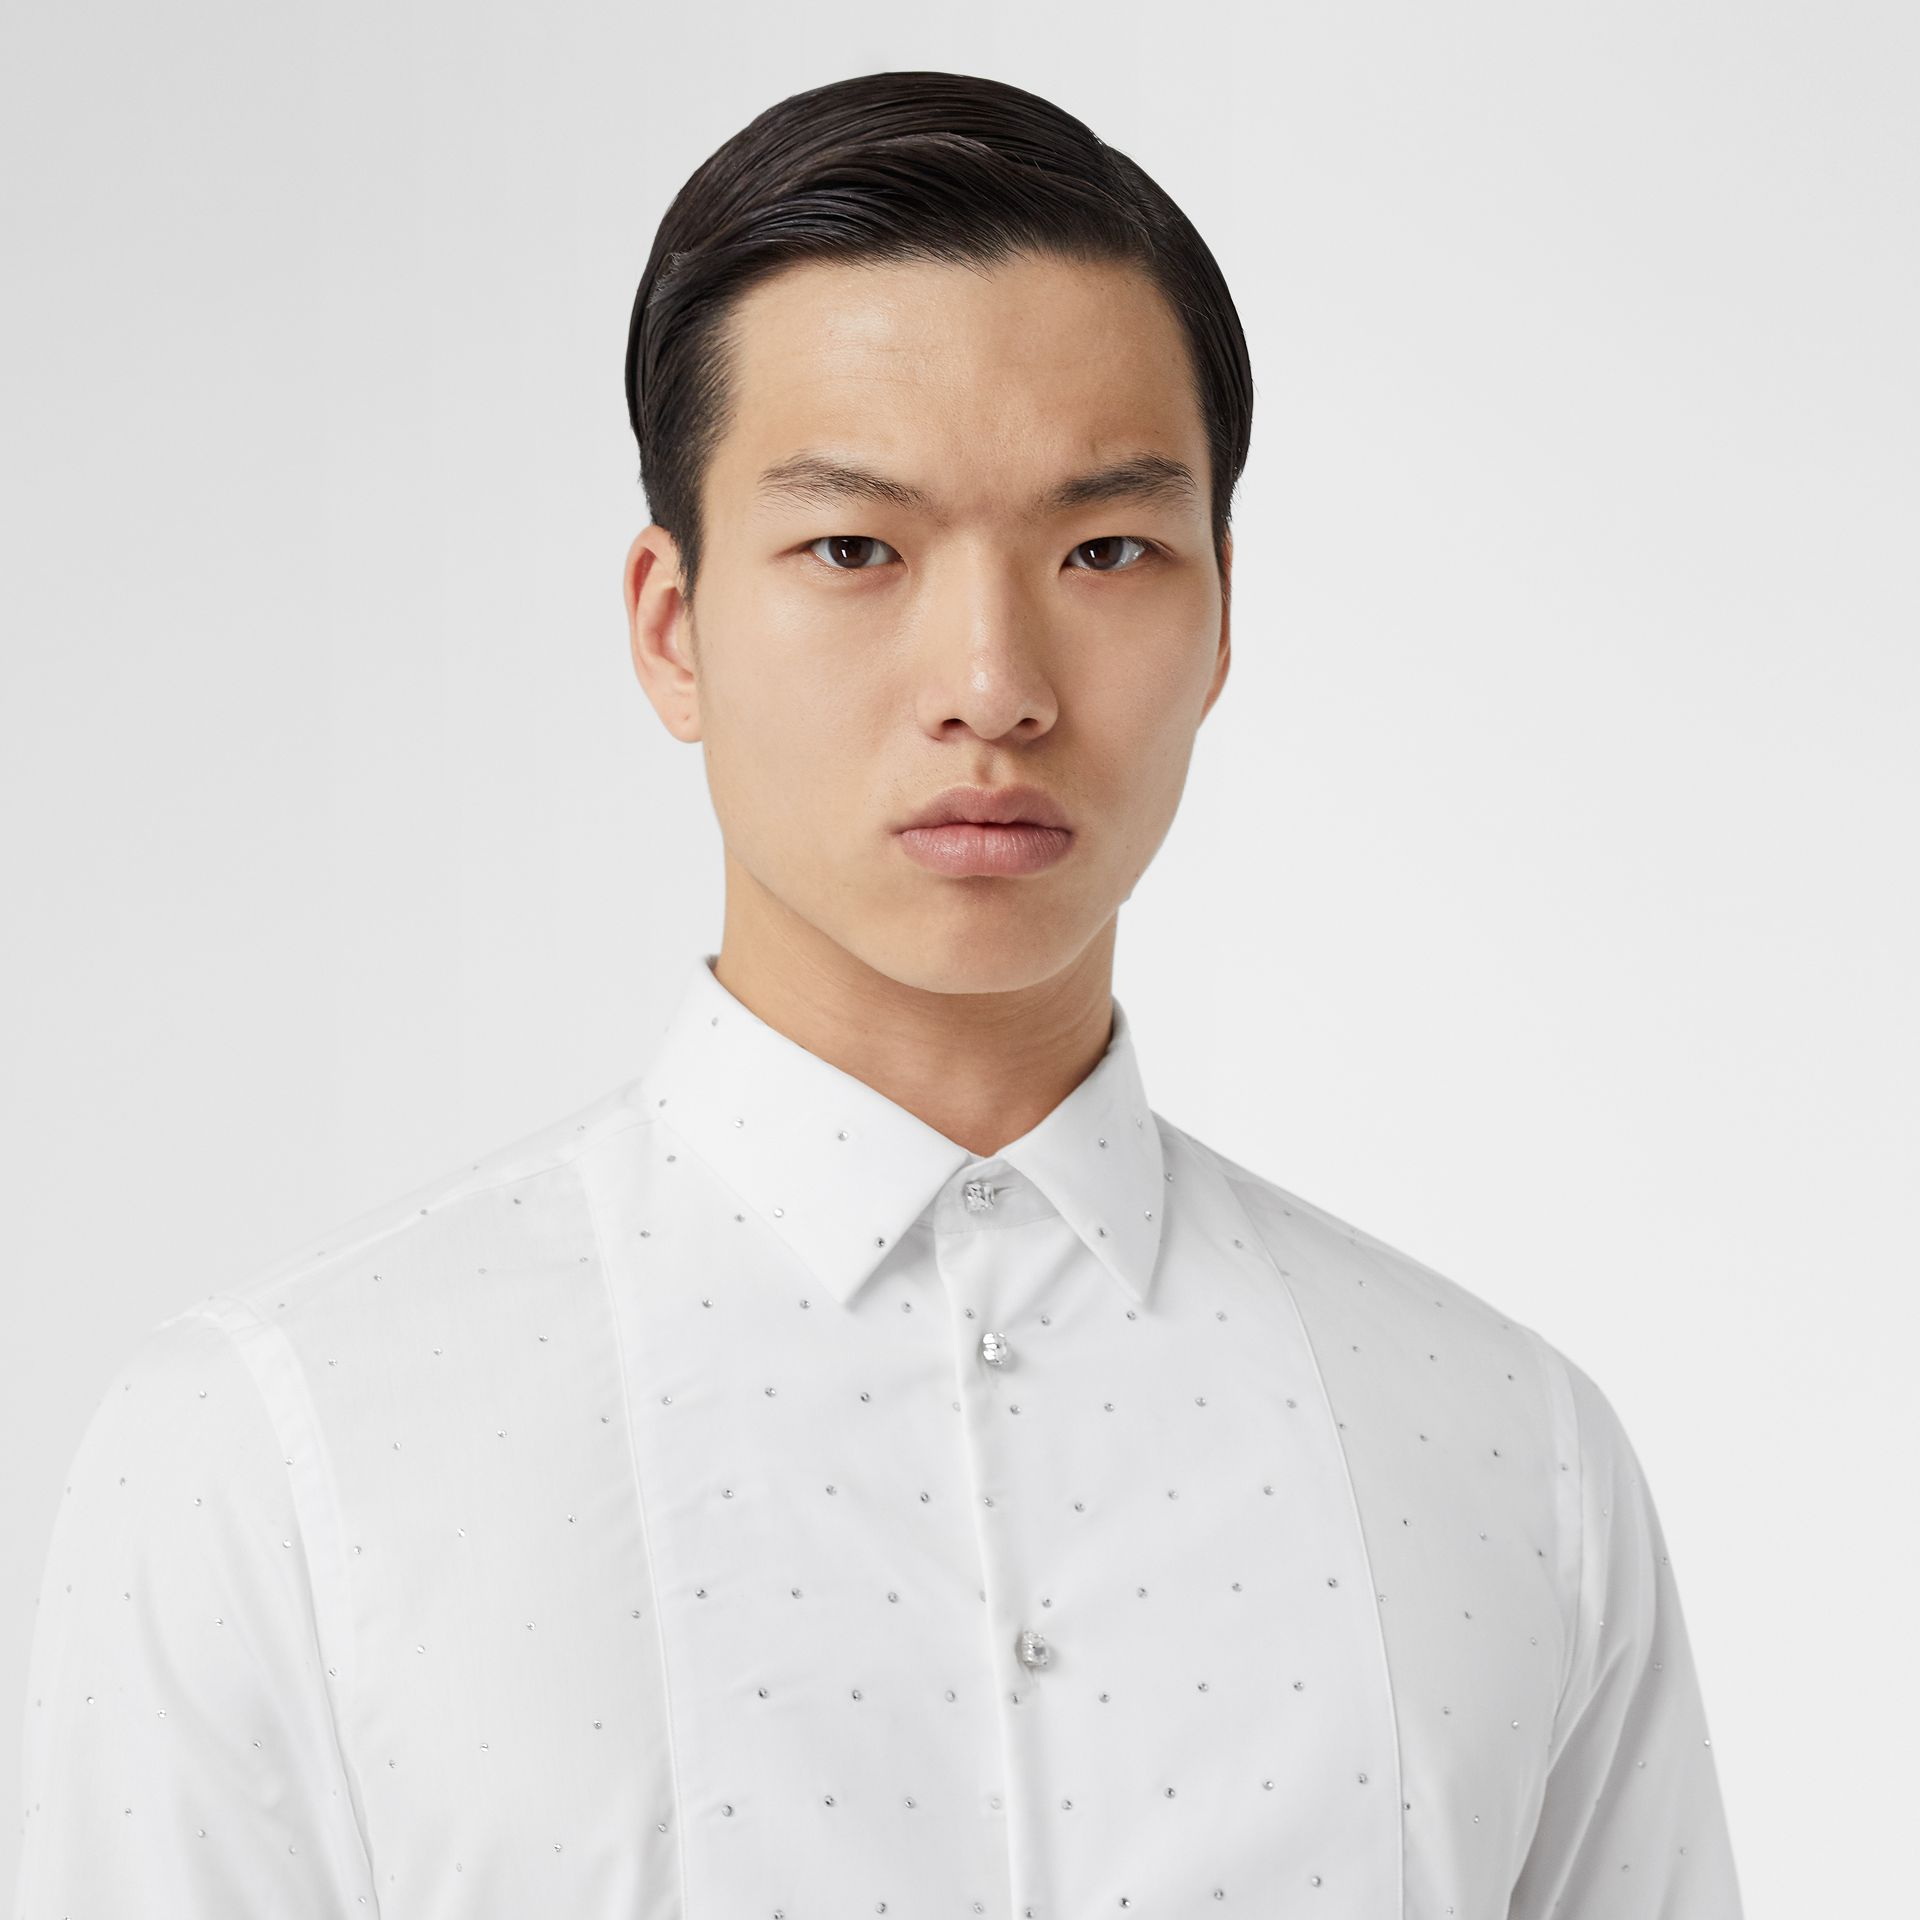 Embellished Cotton Poplin Dress Shirt in Optic White - Men | Burberry - gallery image 1